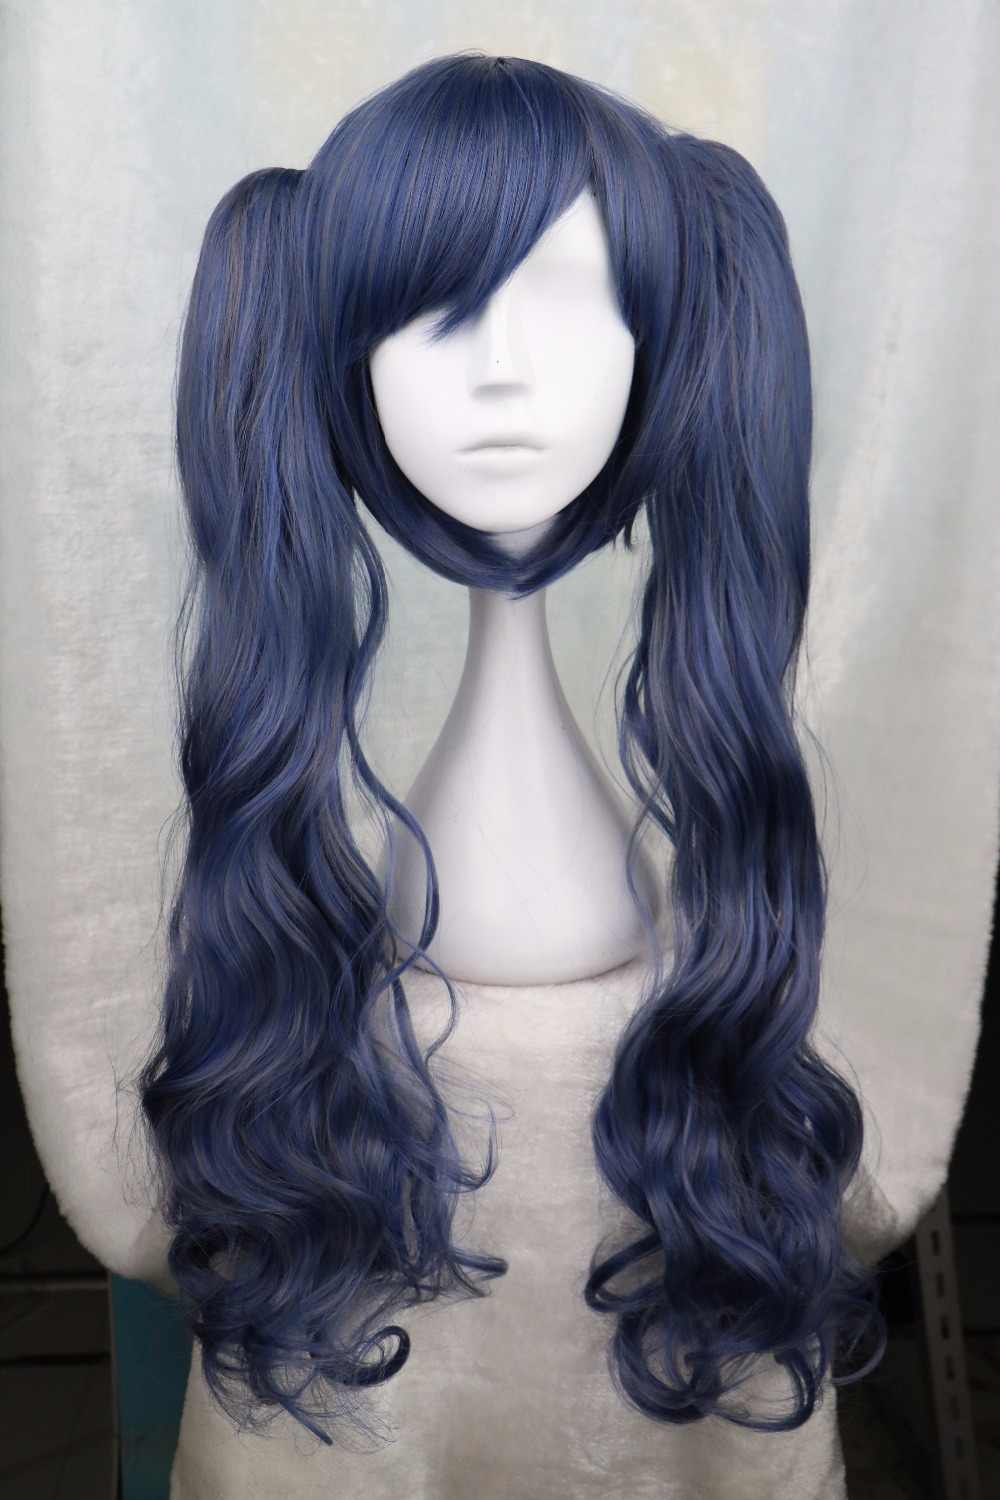 Biamoxer Black Butler Kuroshitsuji Ciel Phantomhive Cross-dressing Girl Drak Blue Cosplay Wig